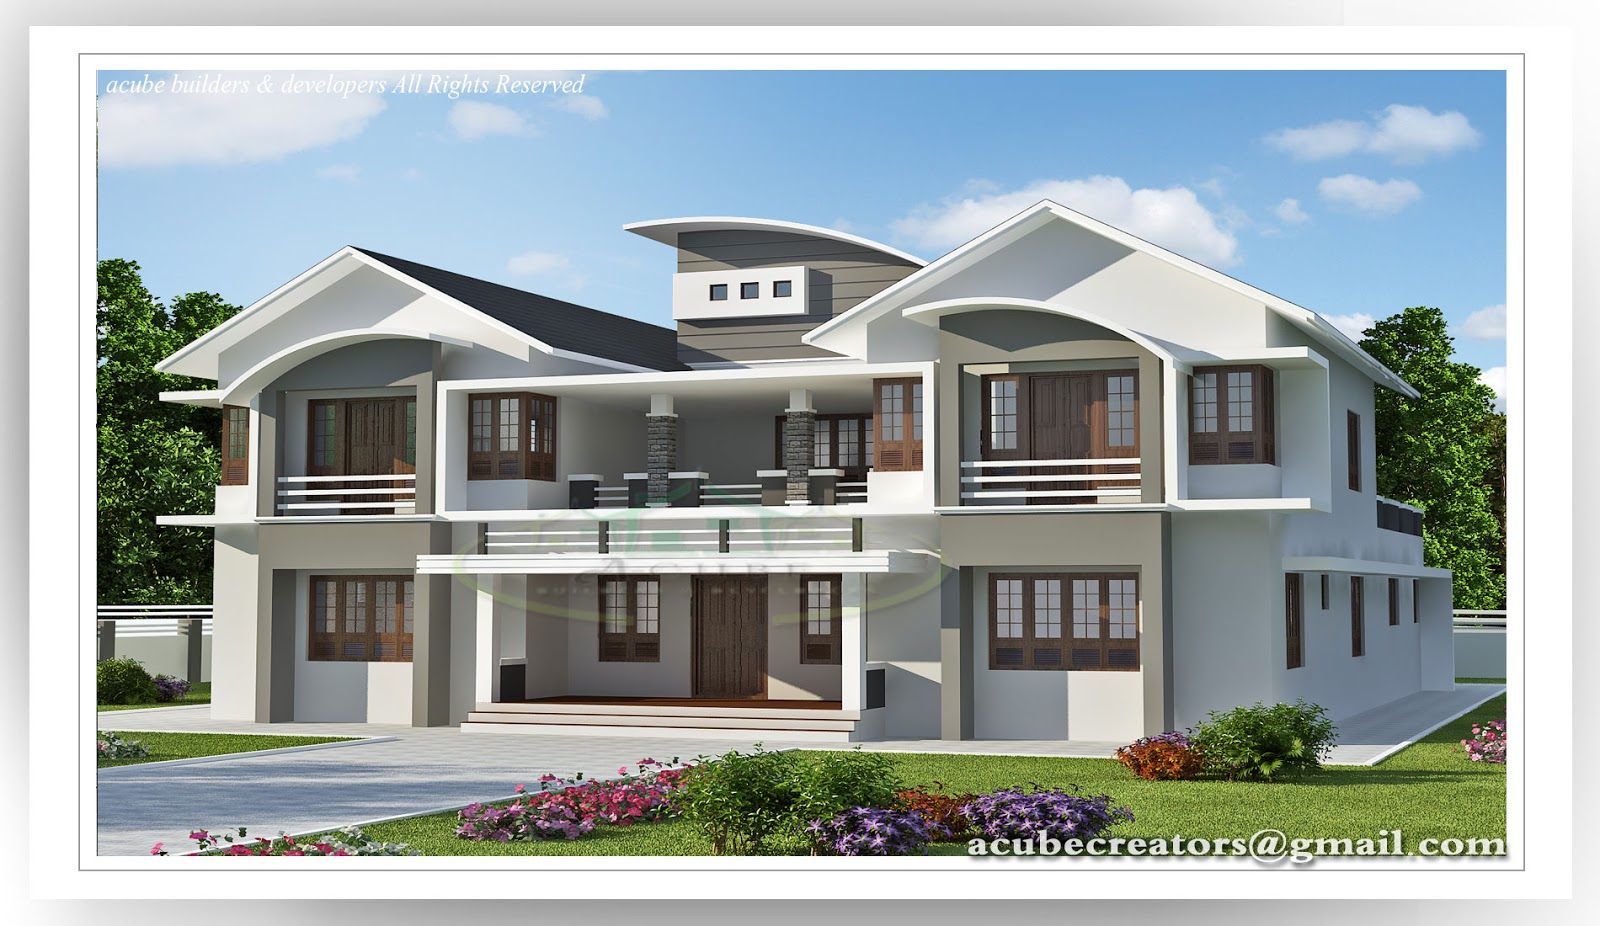 6 bedroom luxury villa design 5091 plan 149 for 6 bedroom country house plans